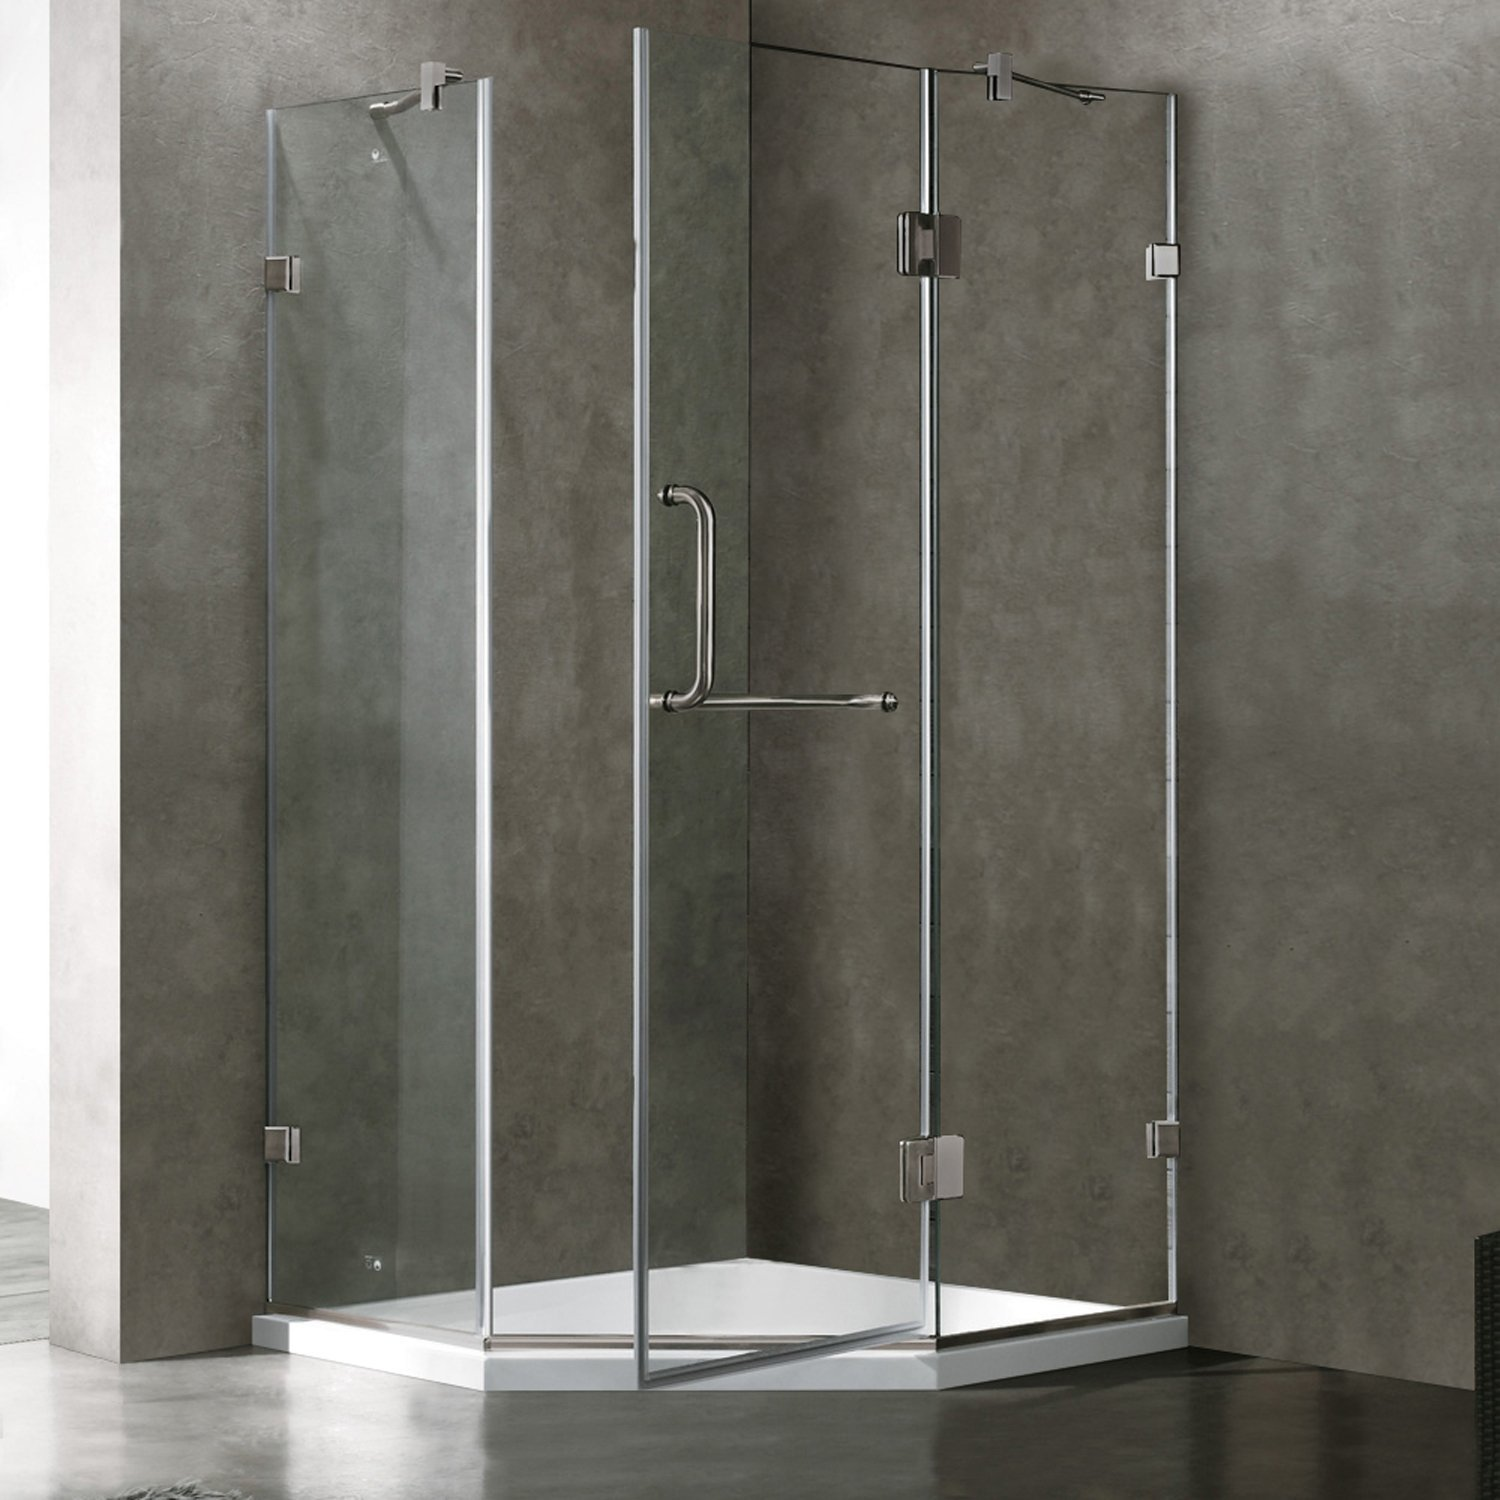 36 Inch Glass Shower Door Doors Design Ideas